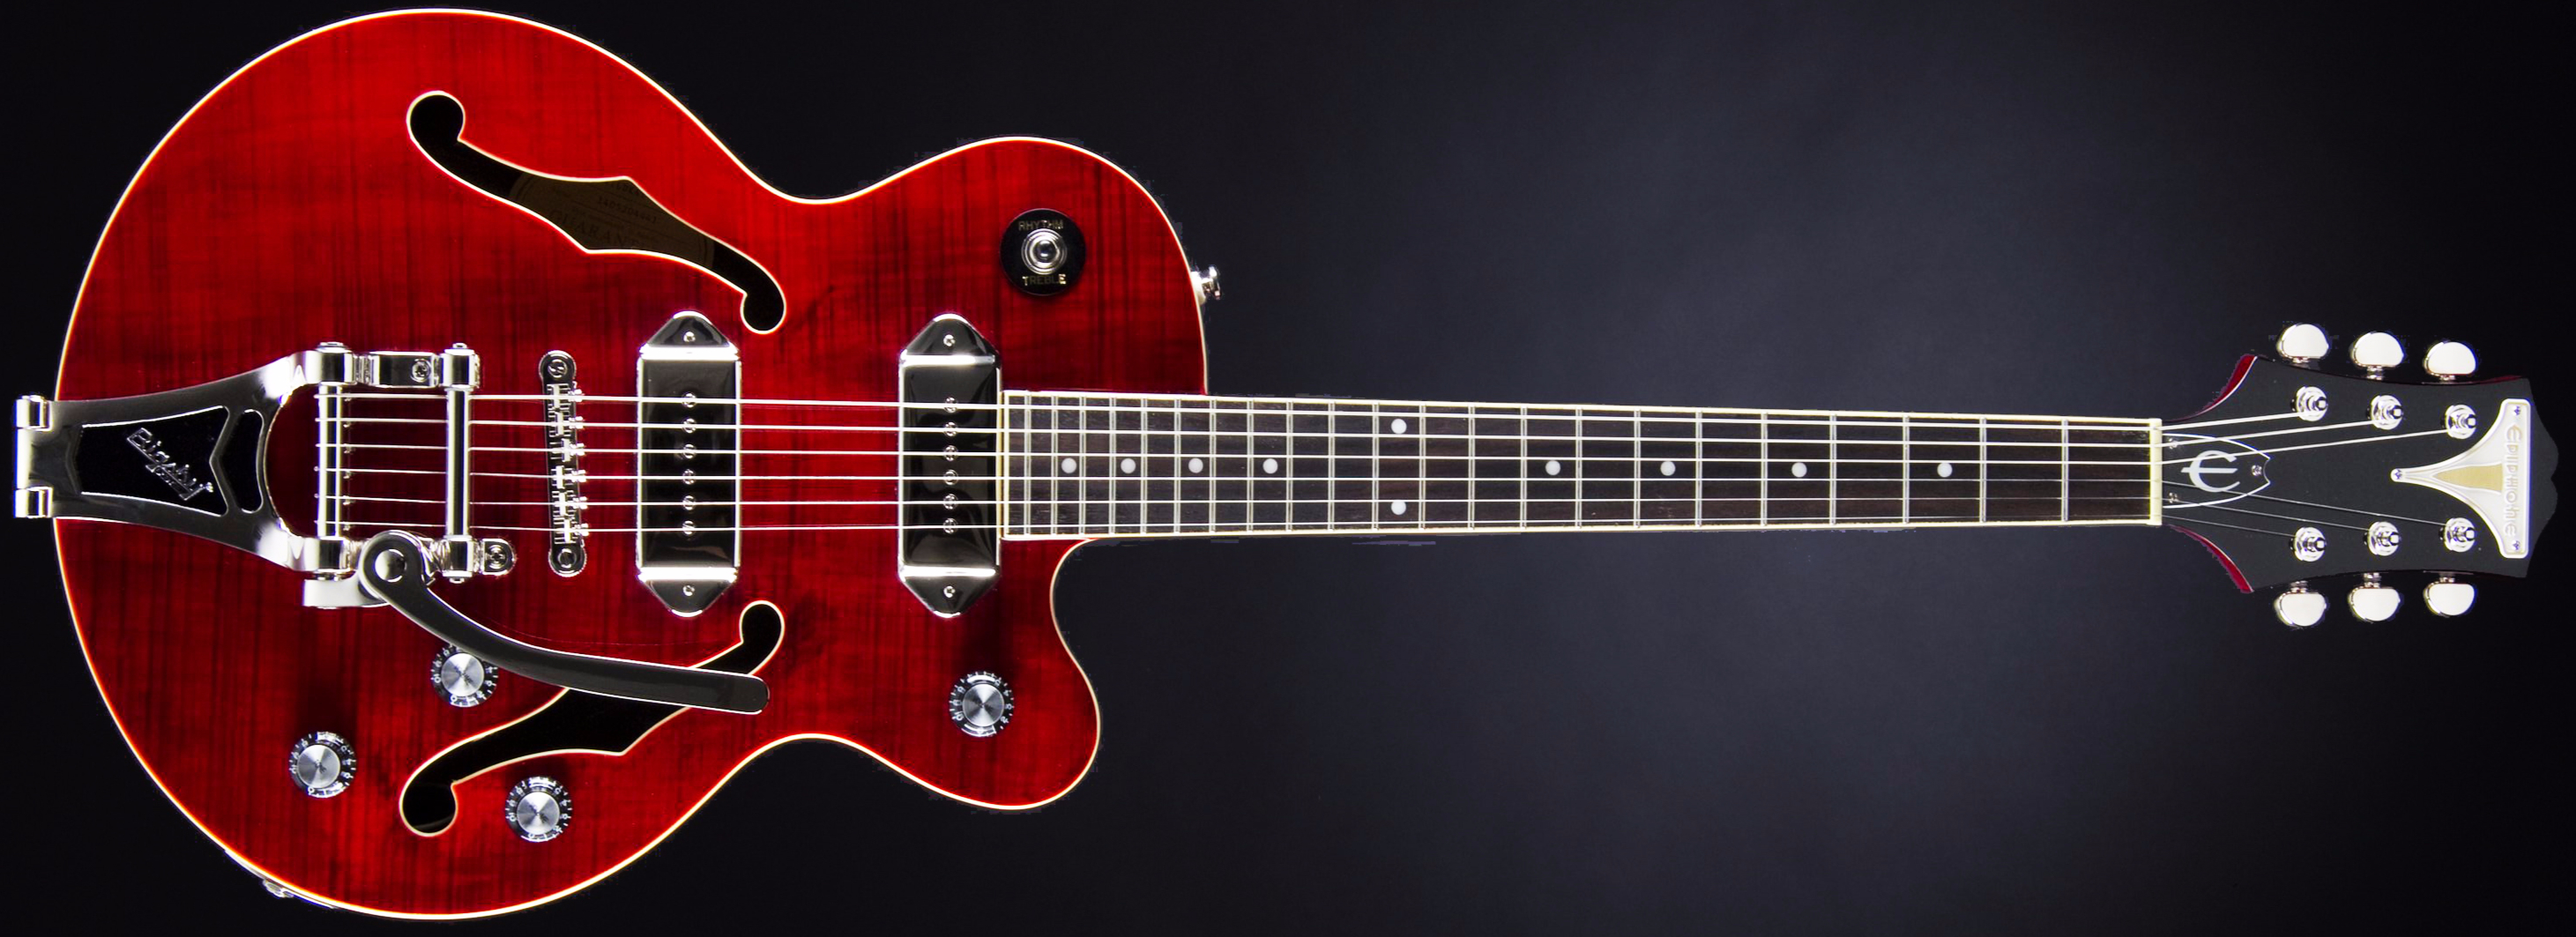 Epiphone Wildkat WR Front